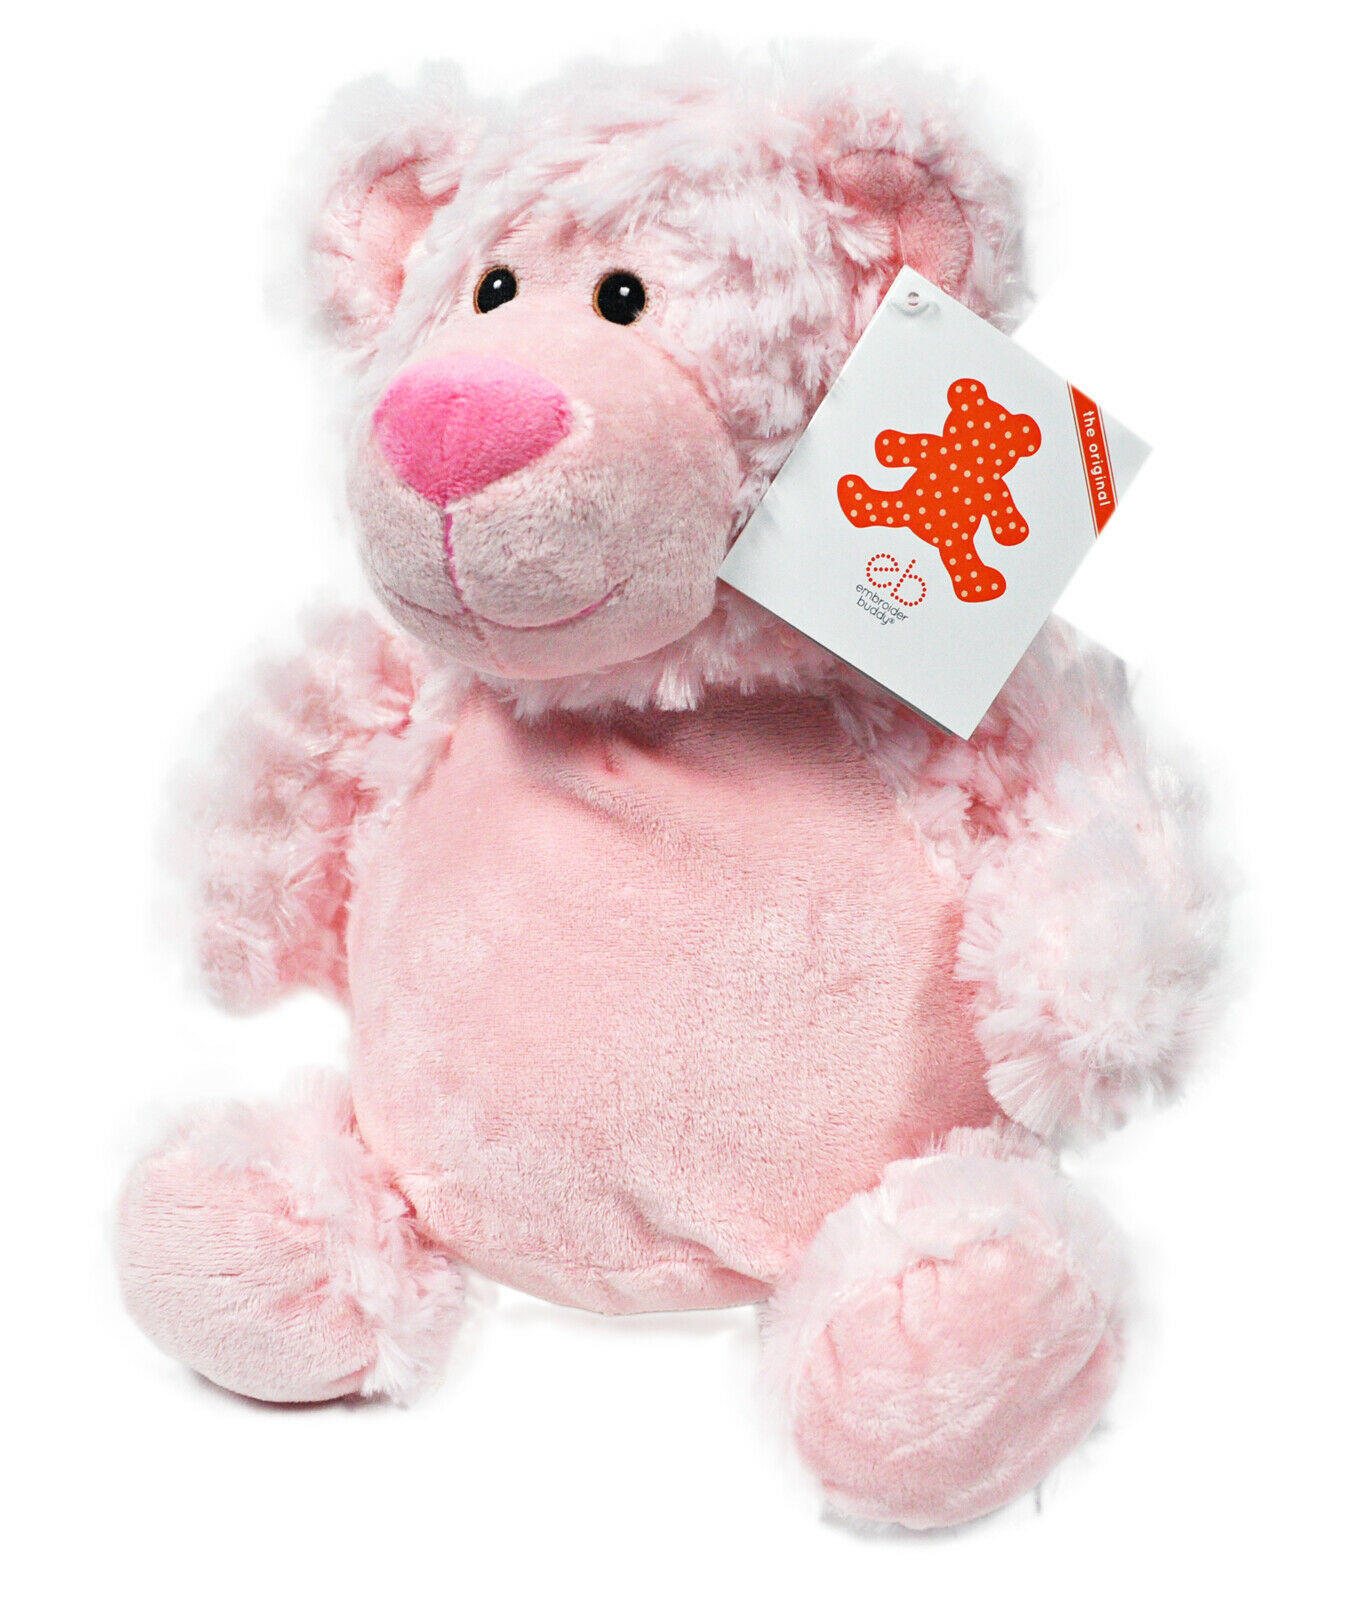 Brodeur Buddy Bobby Ours Rose 16 Pouces Broderie Peluche Animal